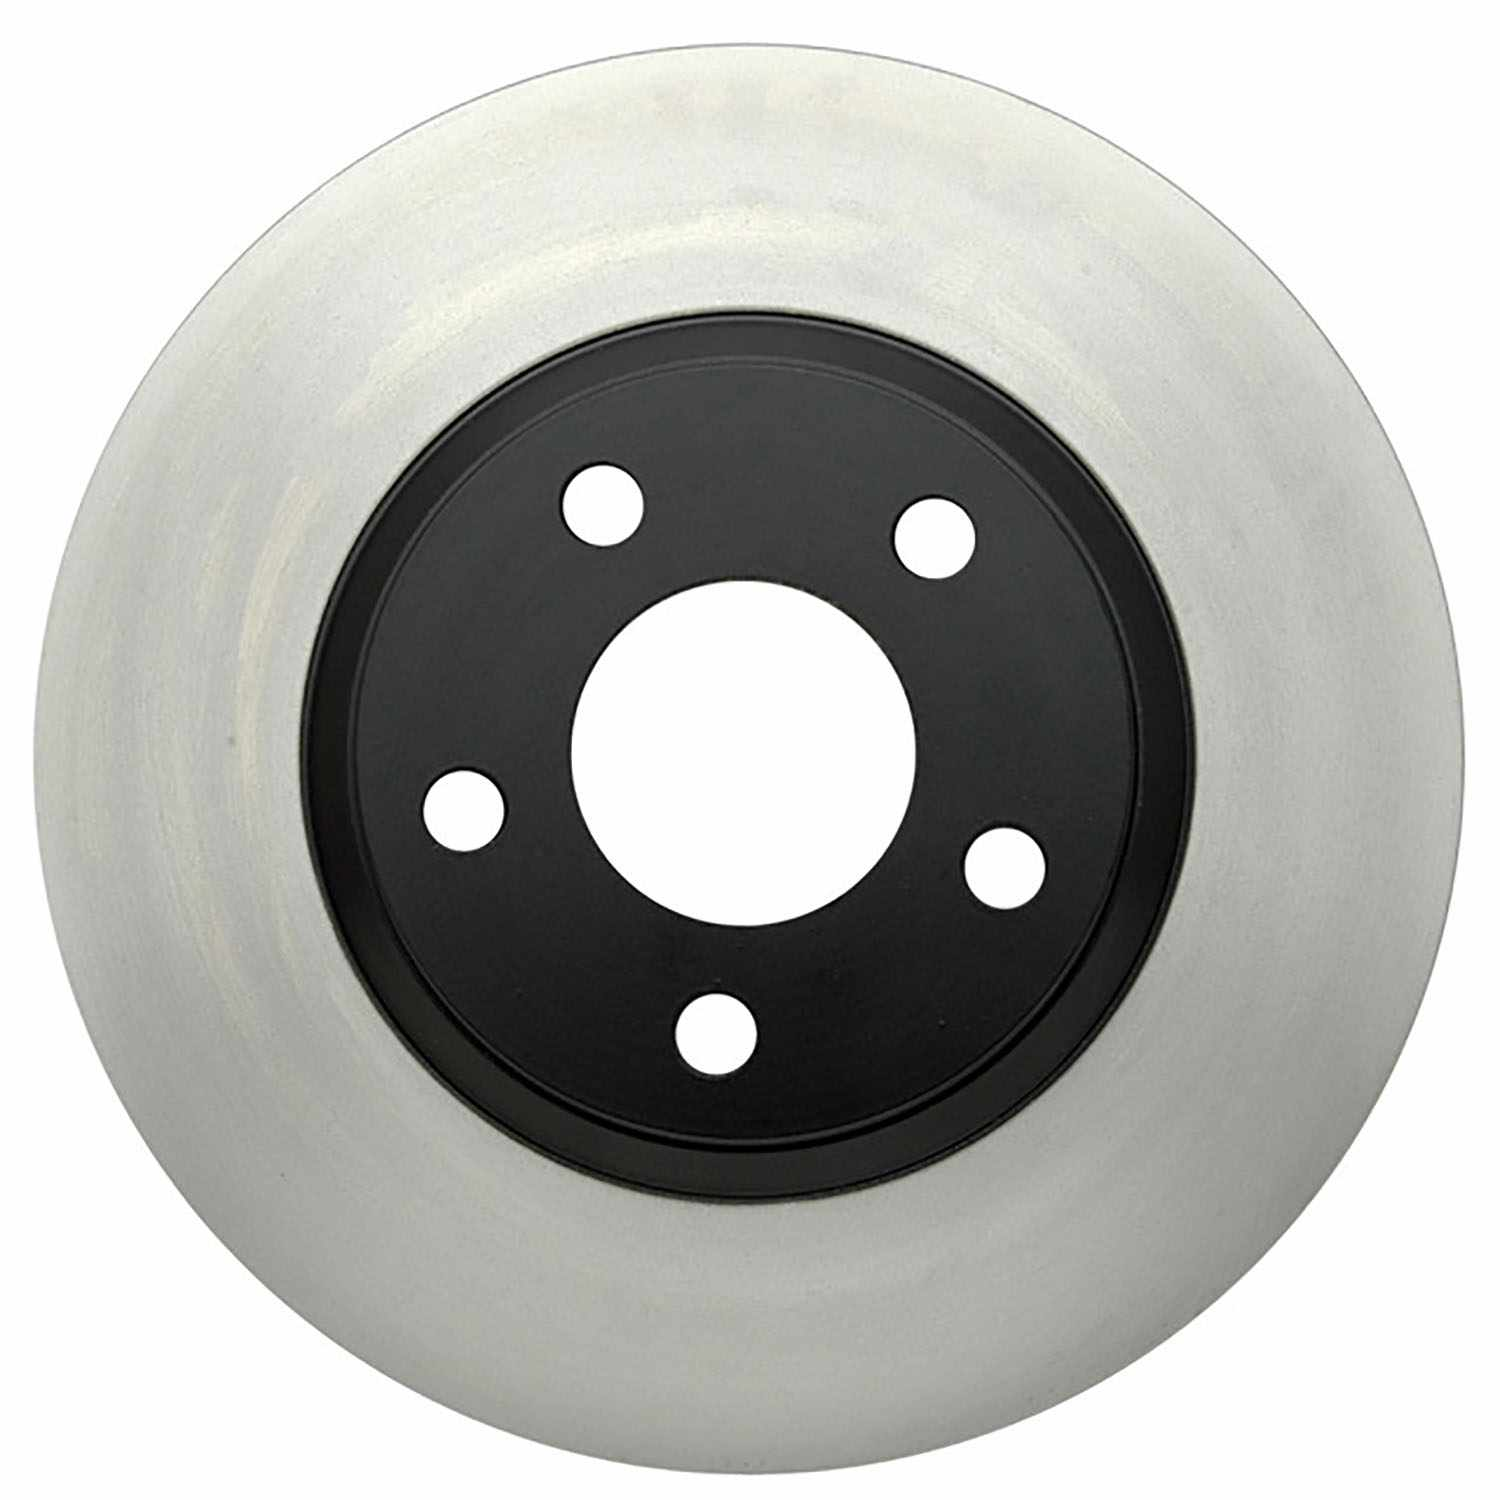 ACDELCO PROFESSIONAL BRAKES - Disc Brake Rotor - ADU 18A813